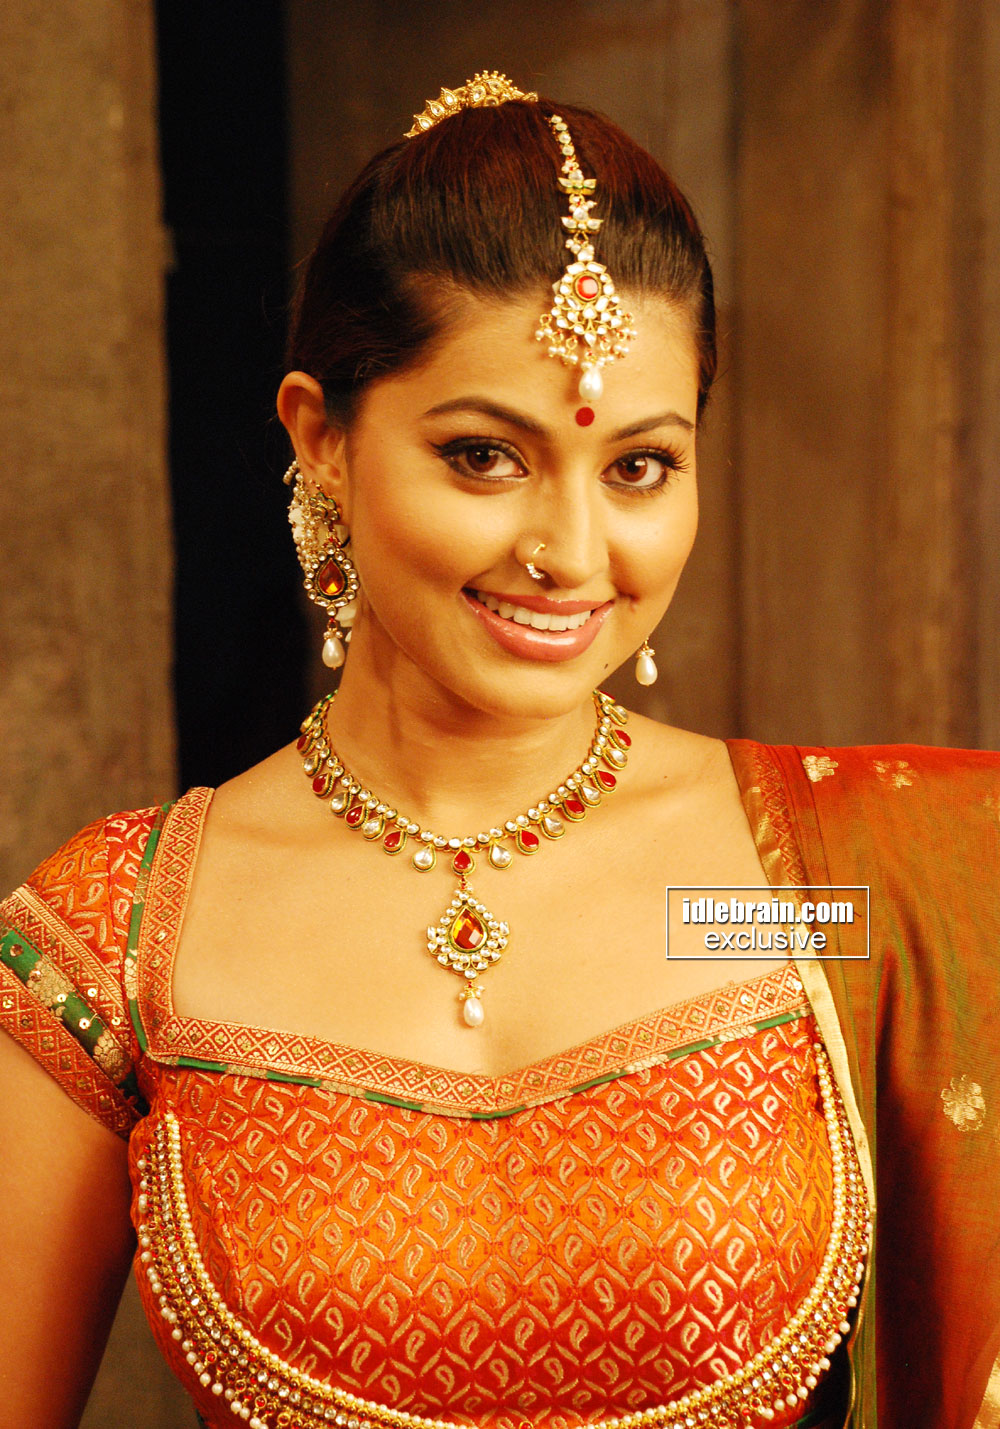 Tamil actress Sneha hot navel show in saree « Mallufun.com